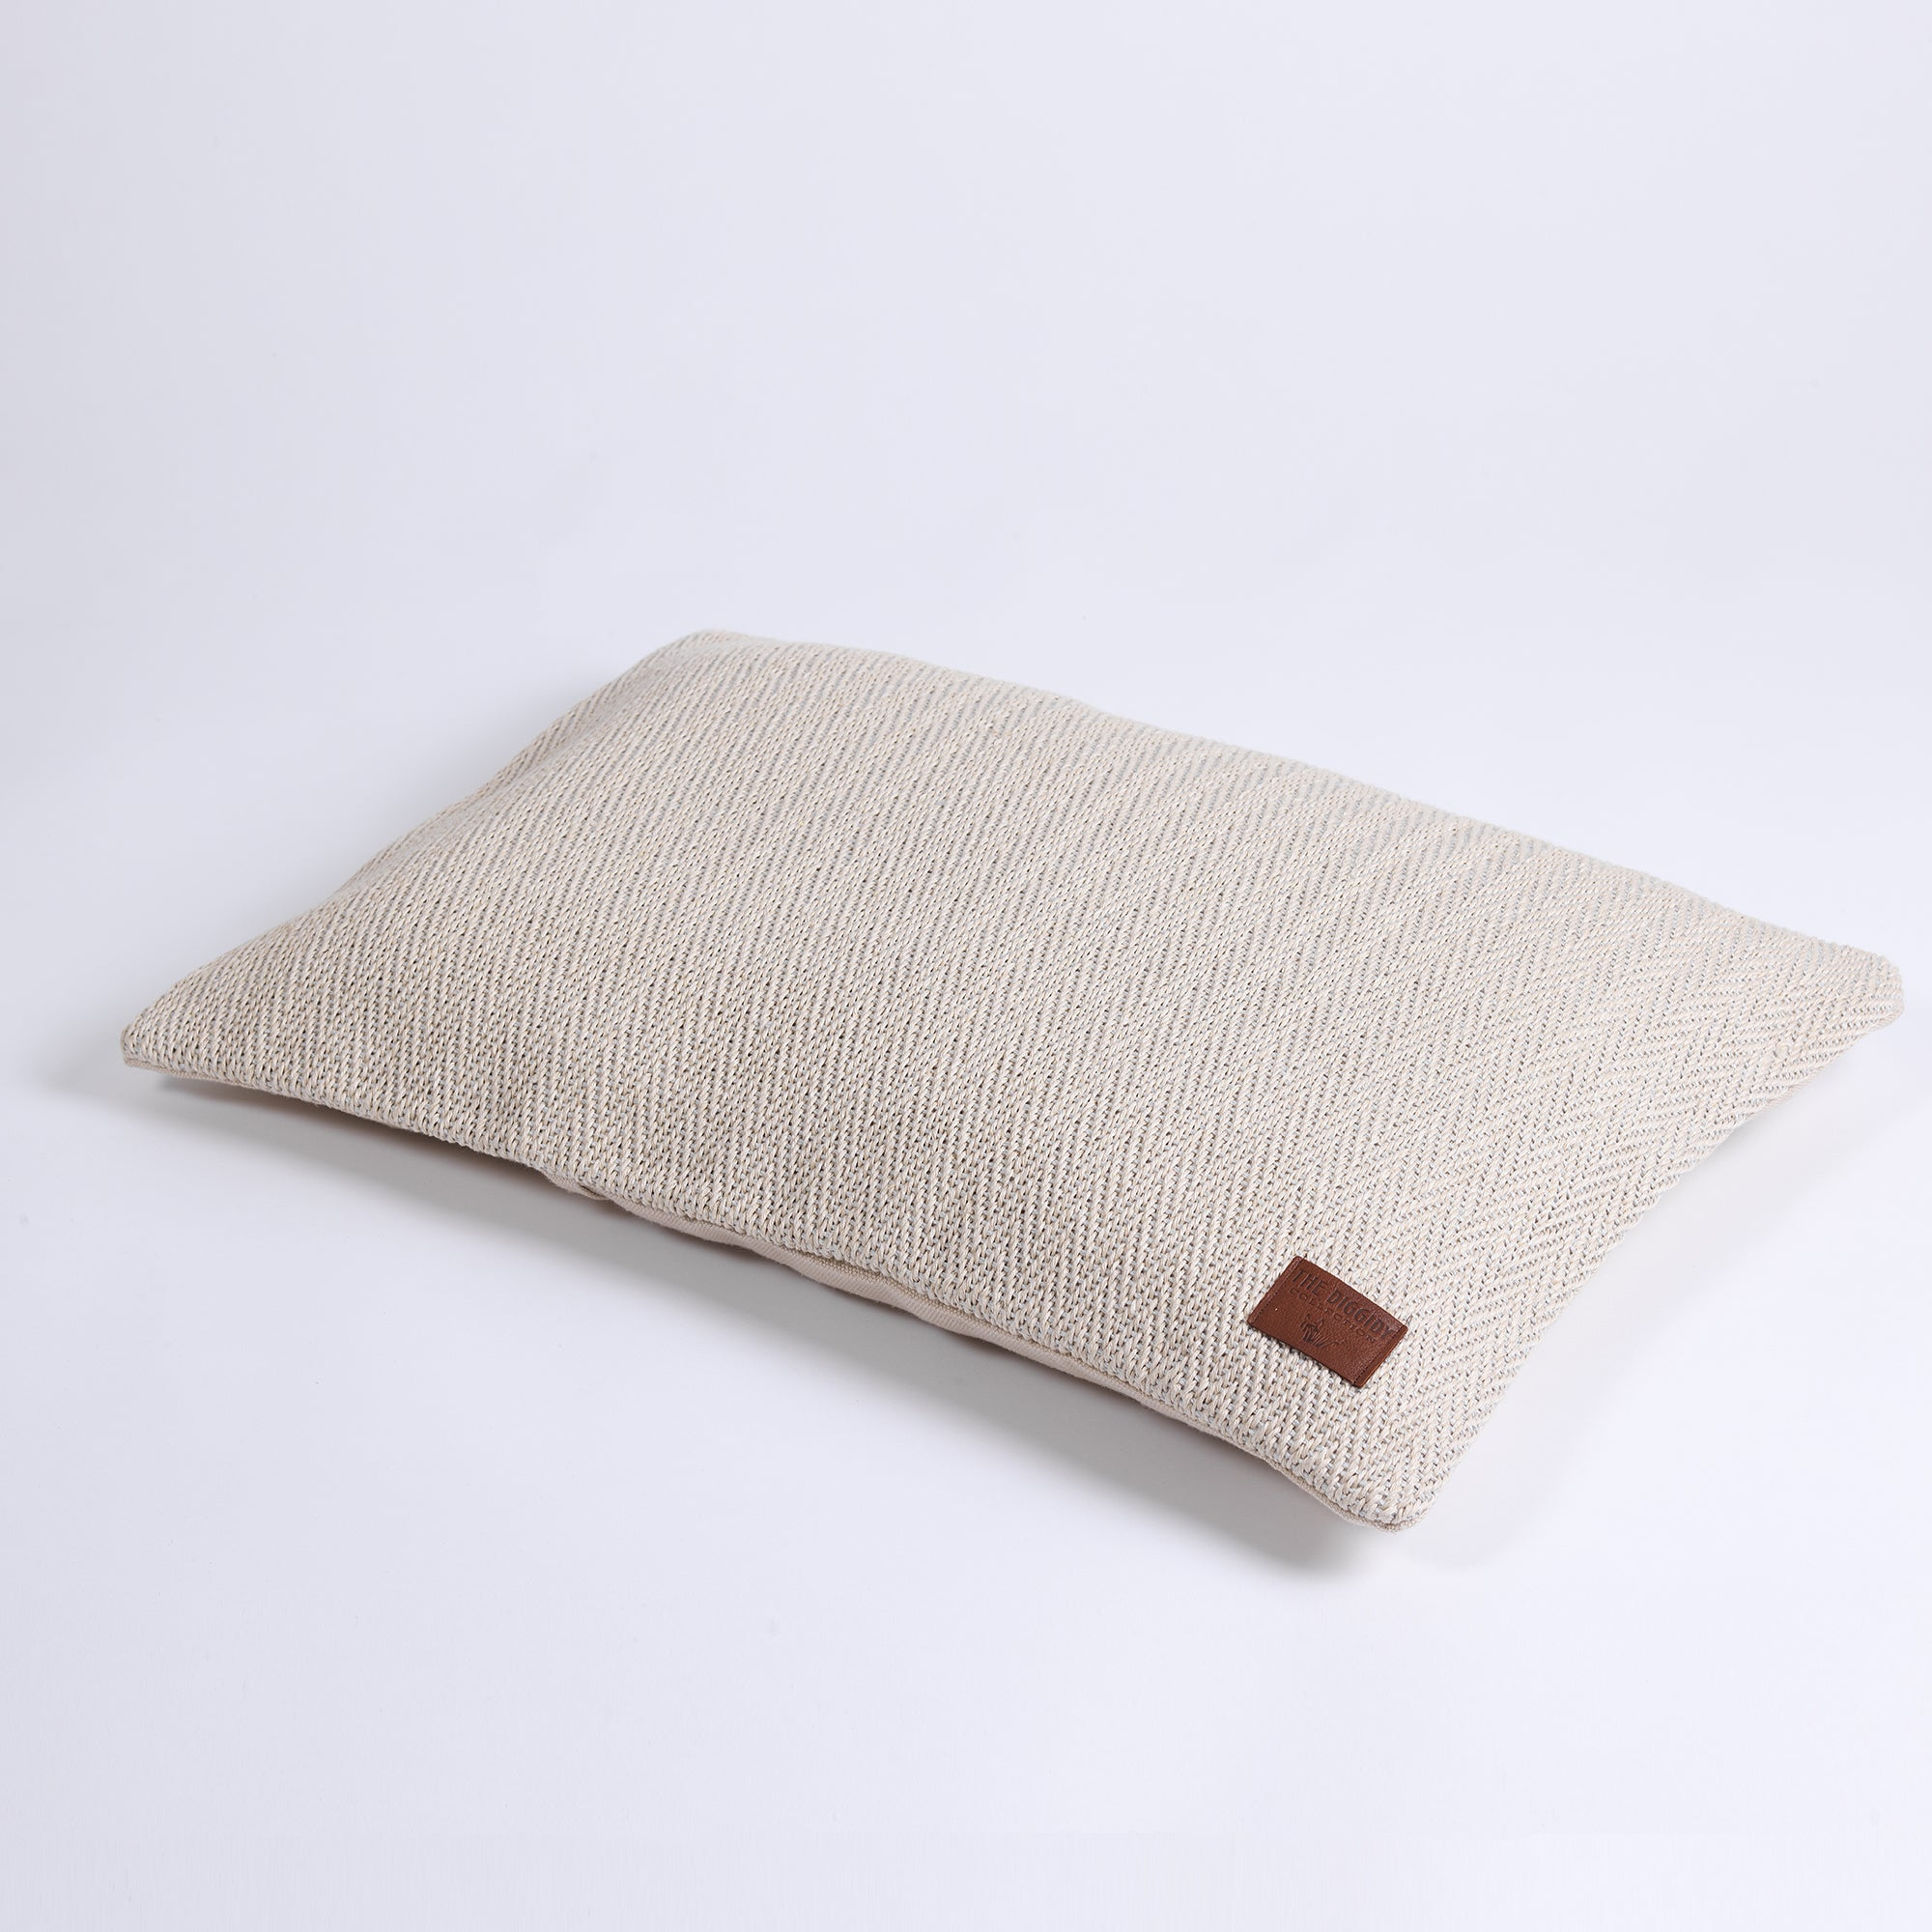 DC Herringbone Hemp Pillow Cover natural